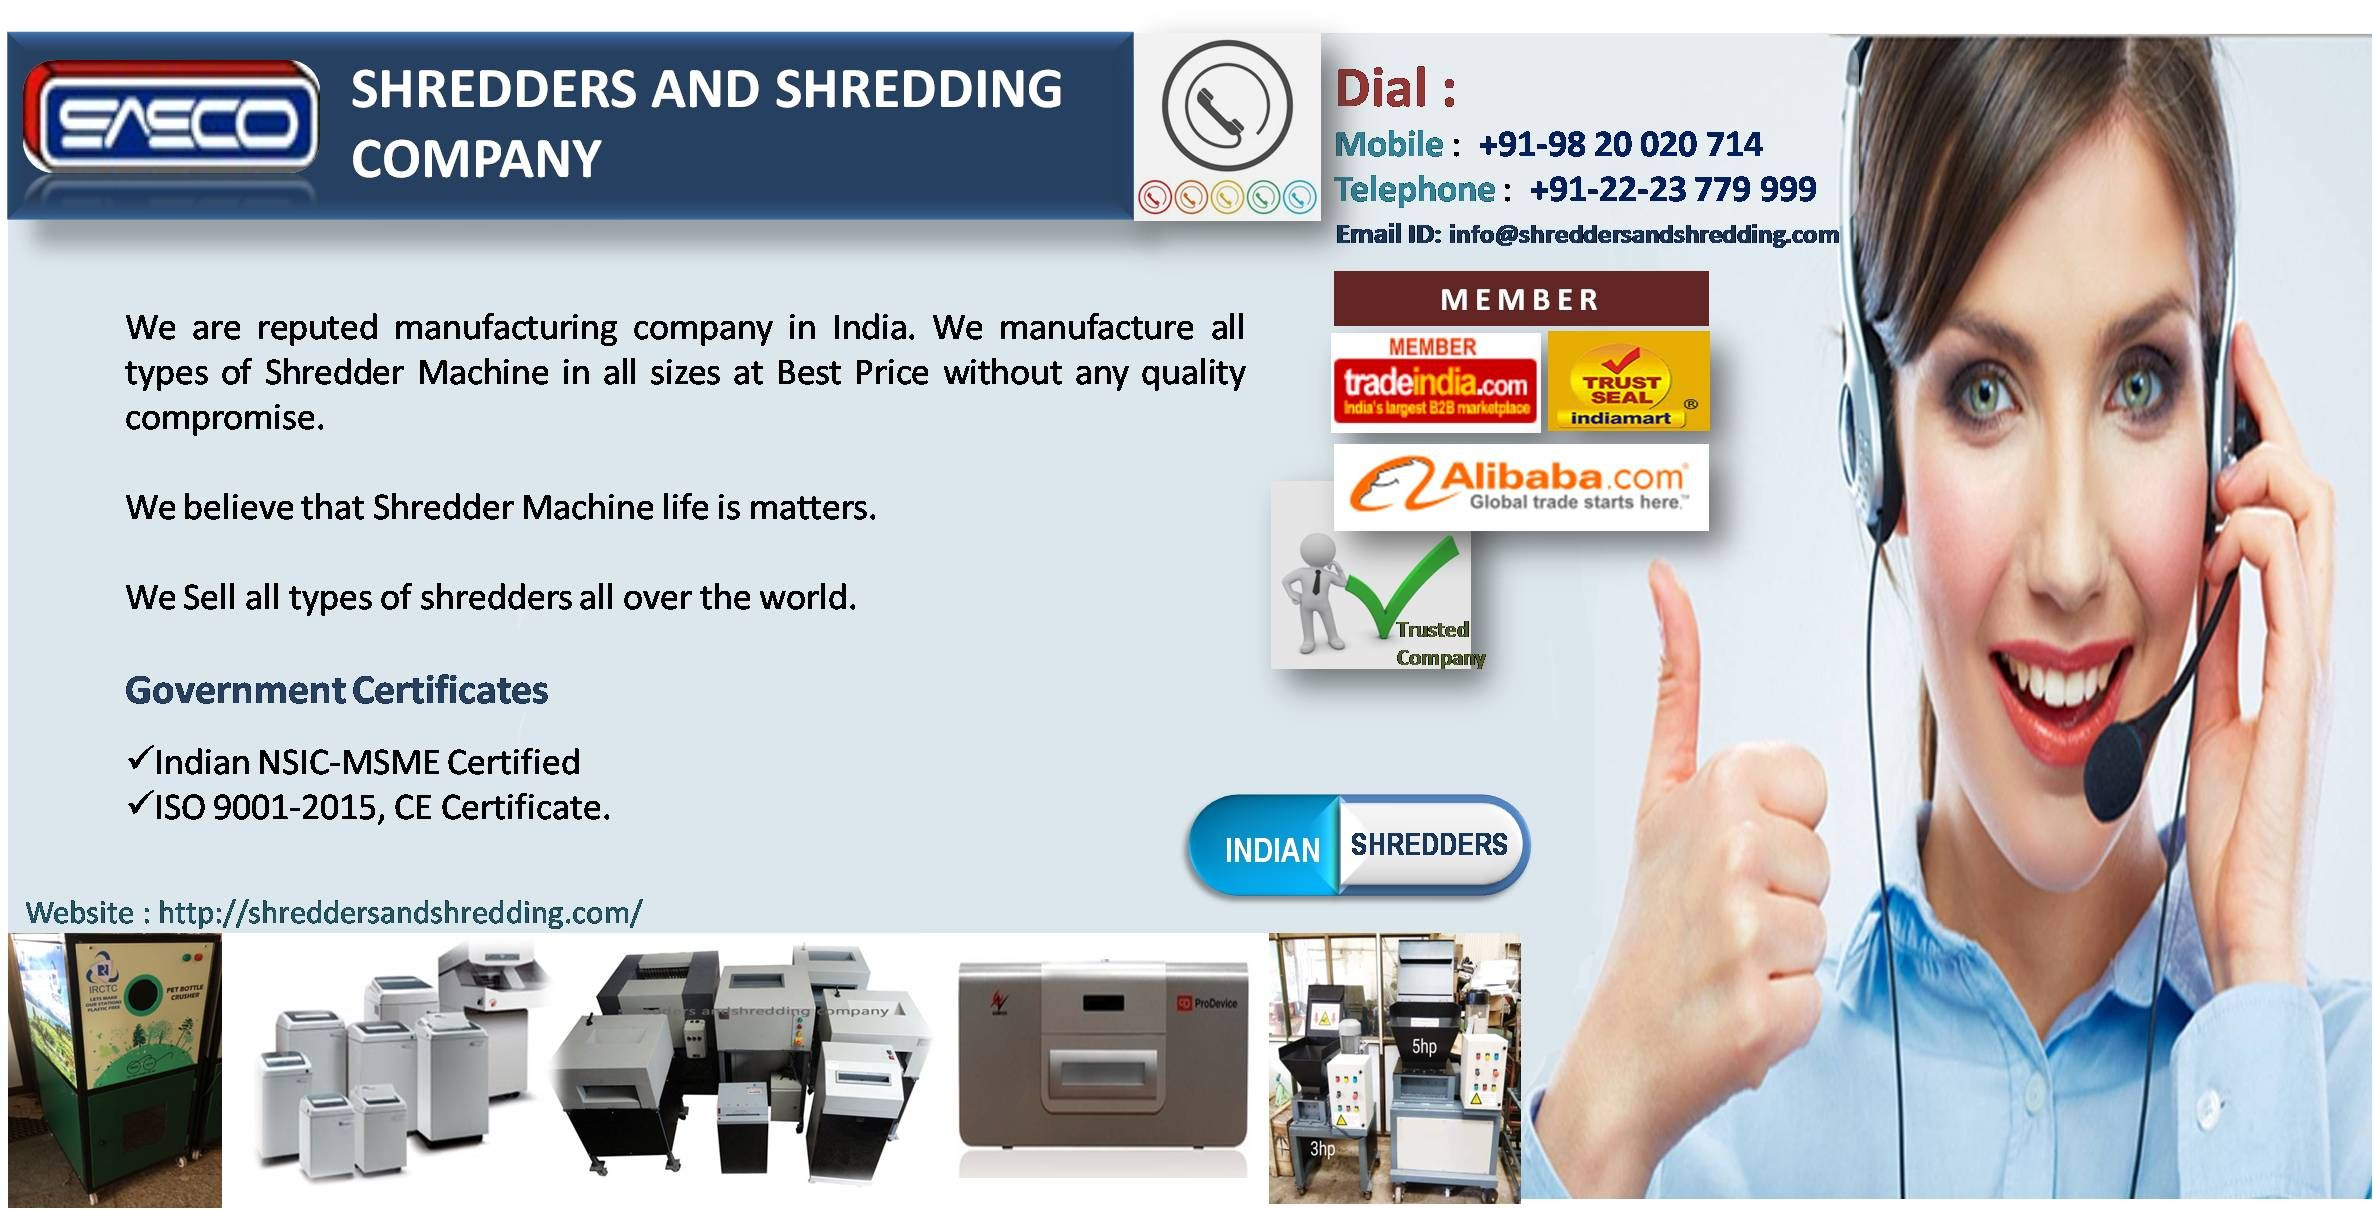 We Are An Indian Reputed Manufacturing Company We Manufacture All Types Of Shredder Machine In All Size At Best Company Paper Paper Shredder Shredder Machine